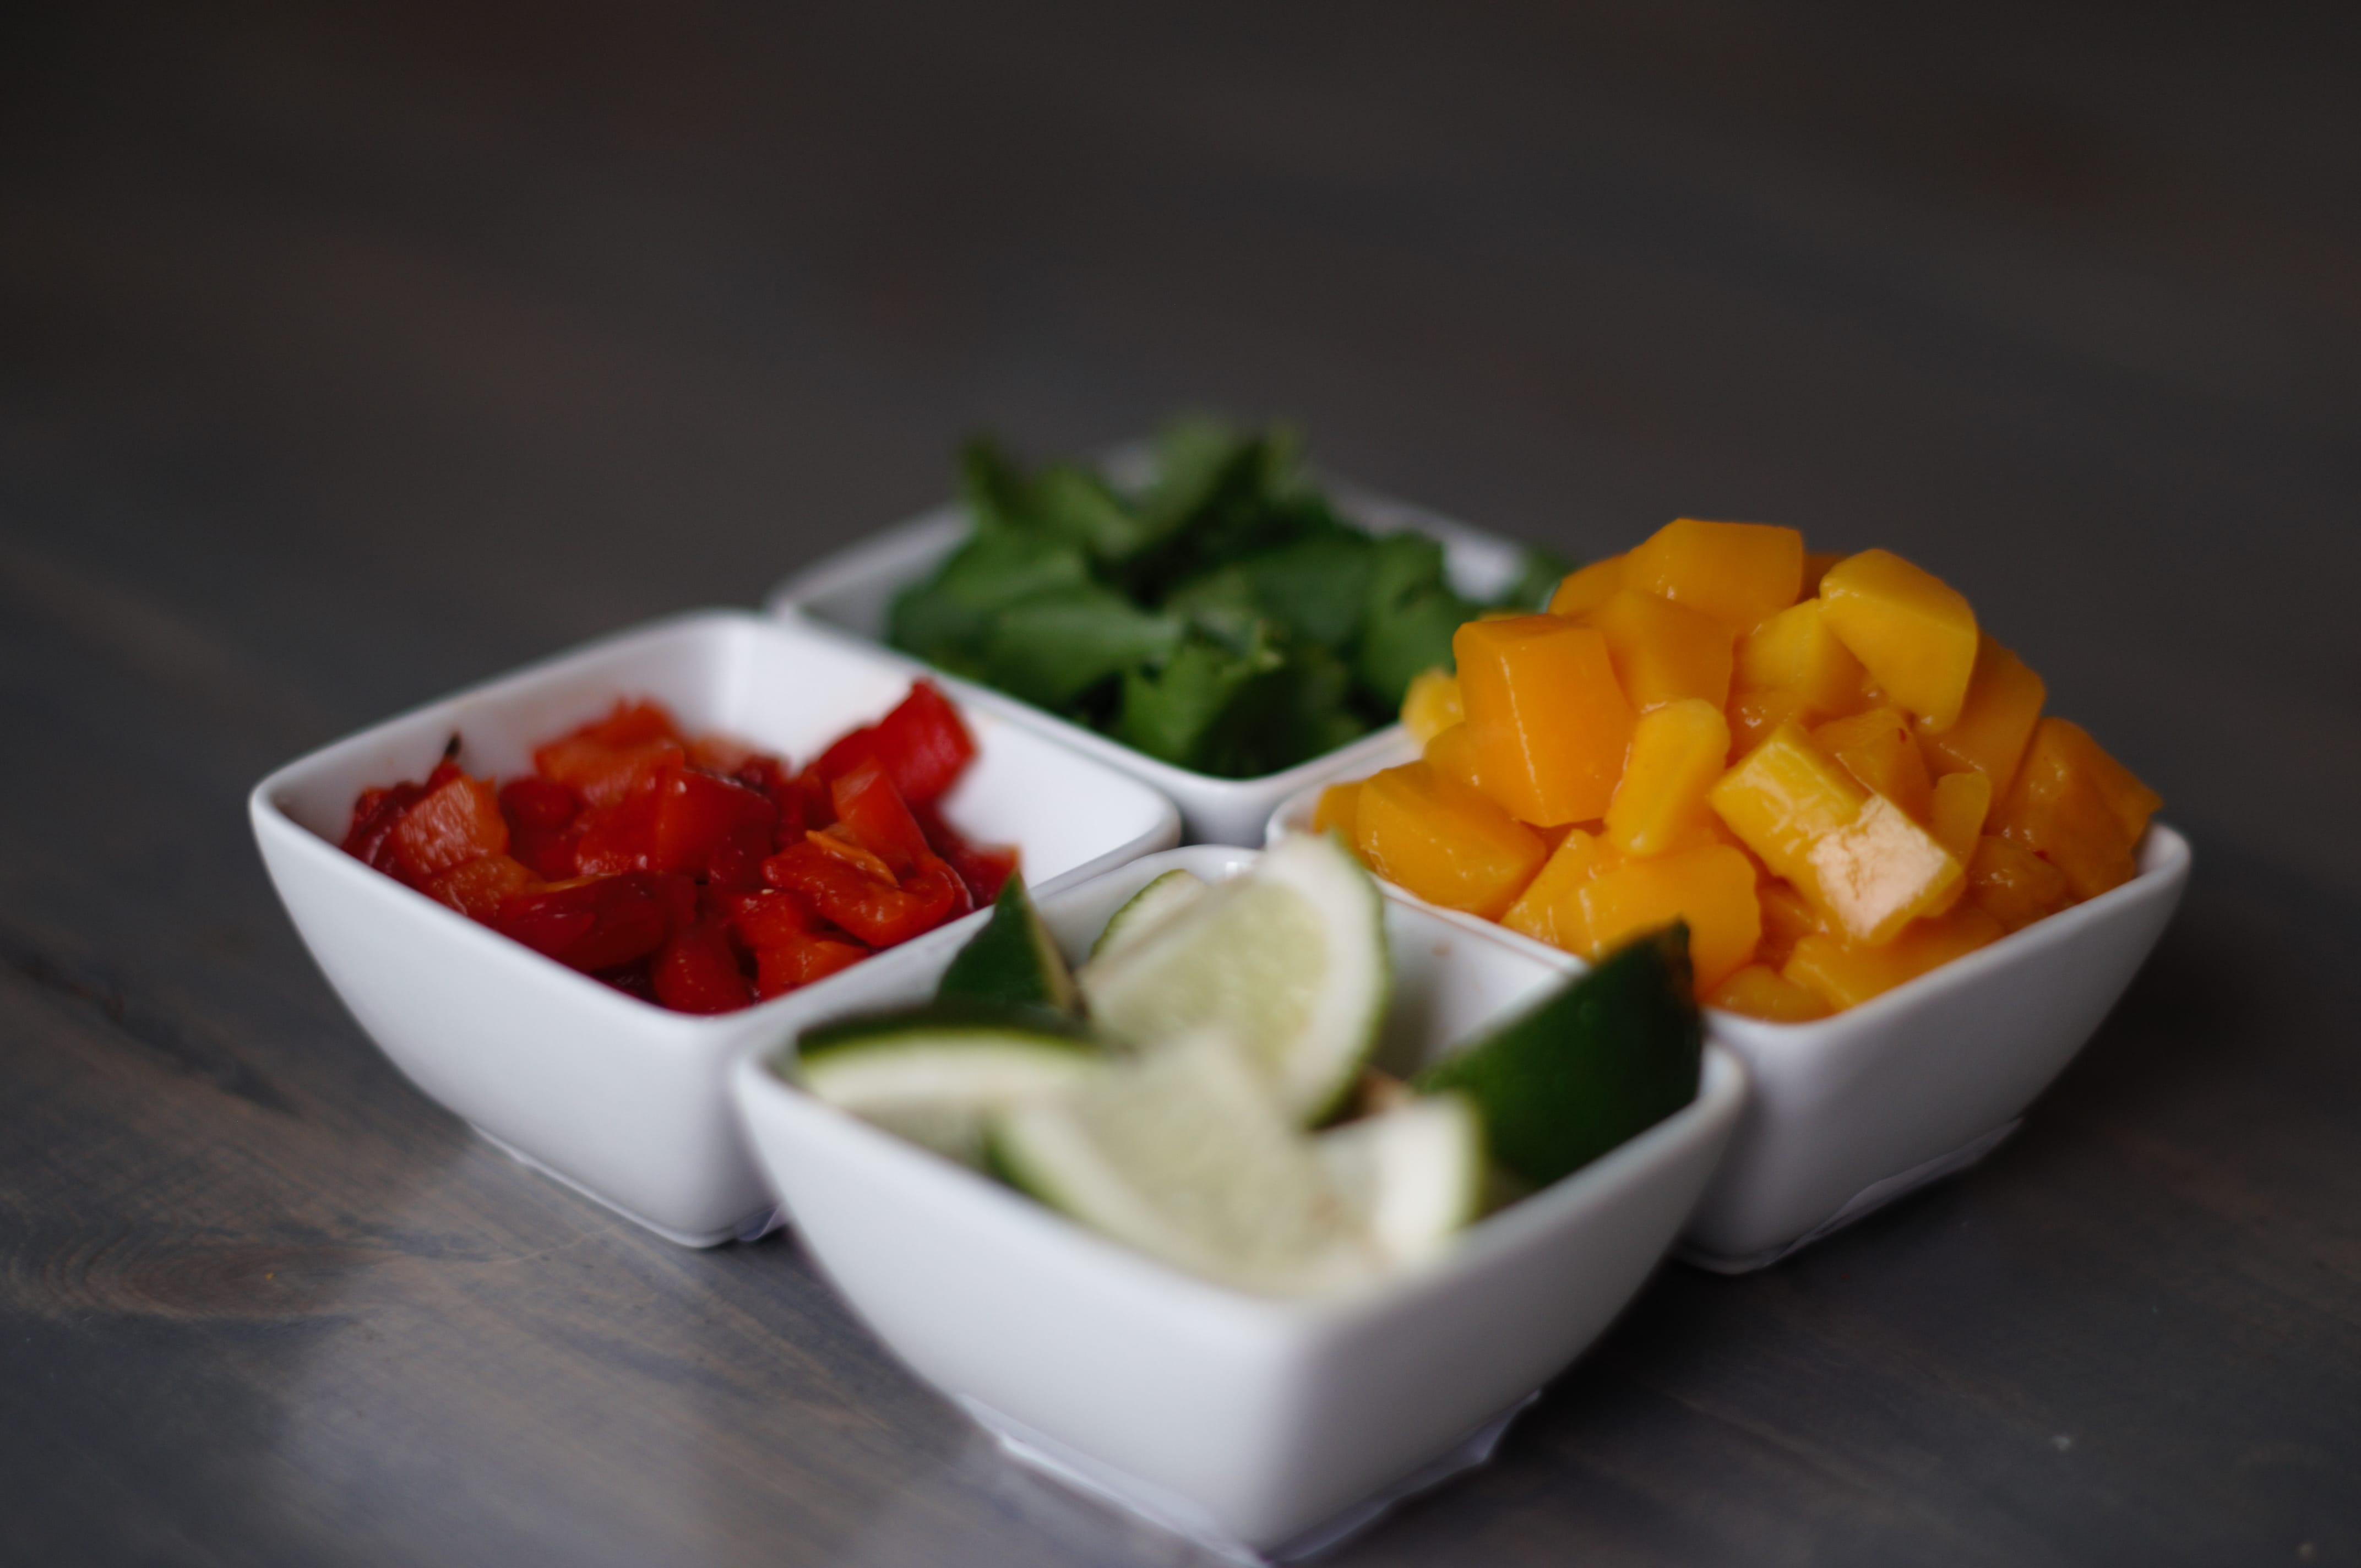 veggies in bowls on wooden table.